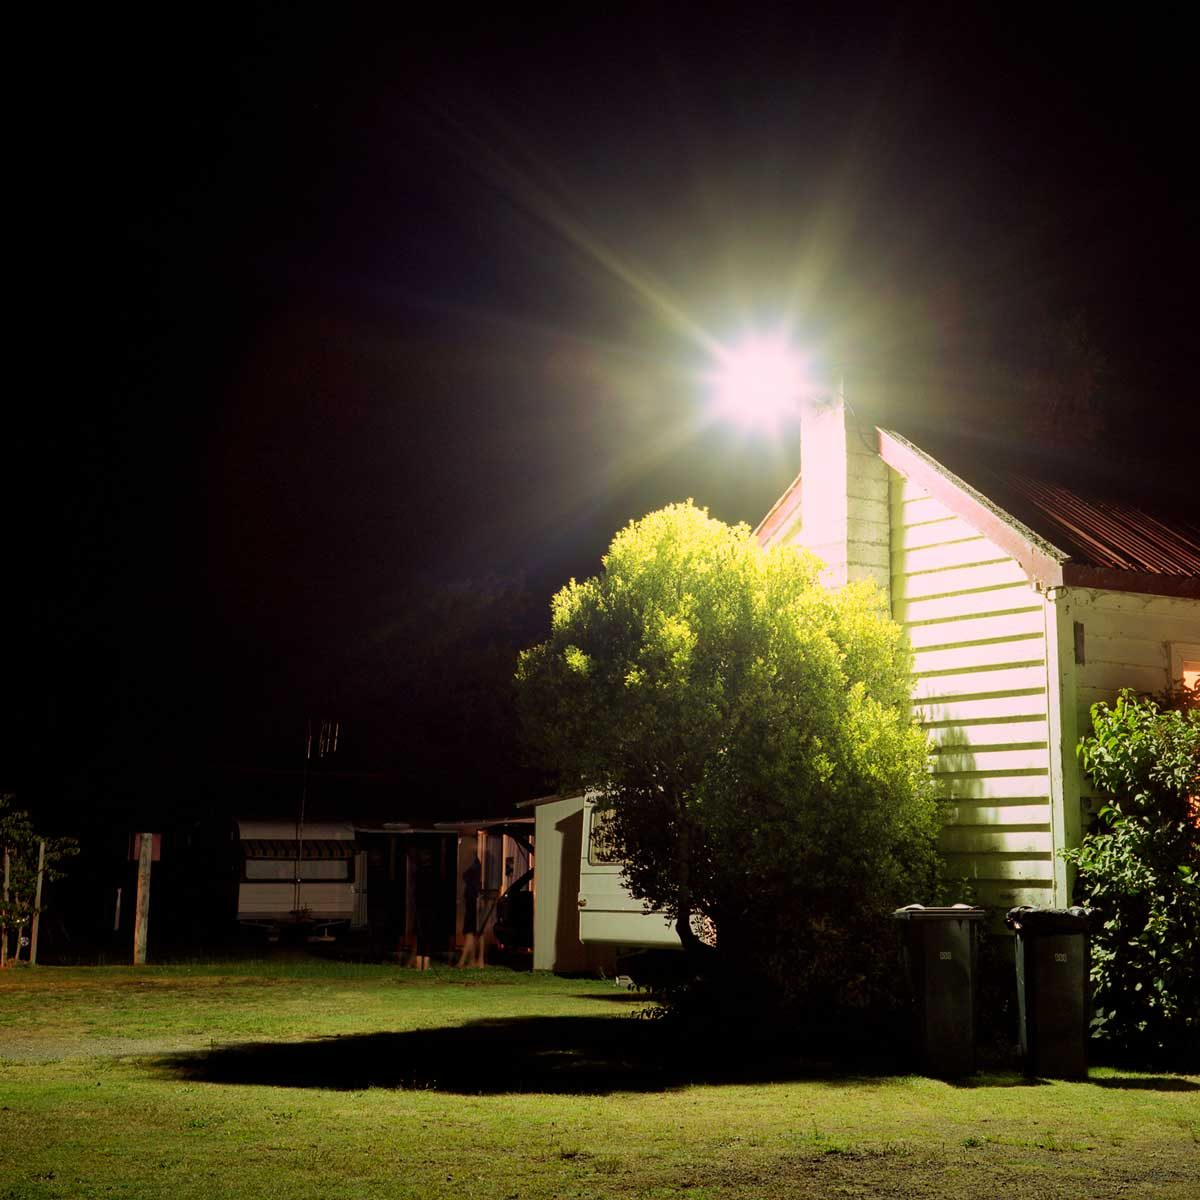 Floodlight on a home